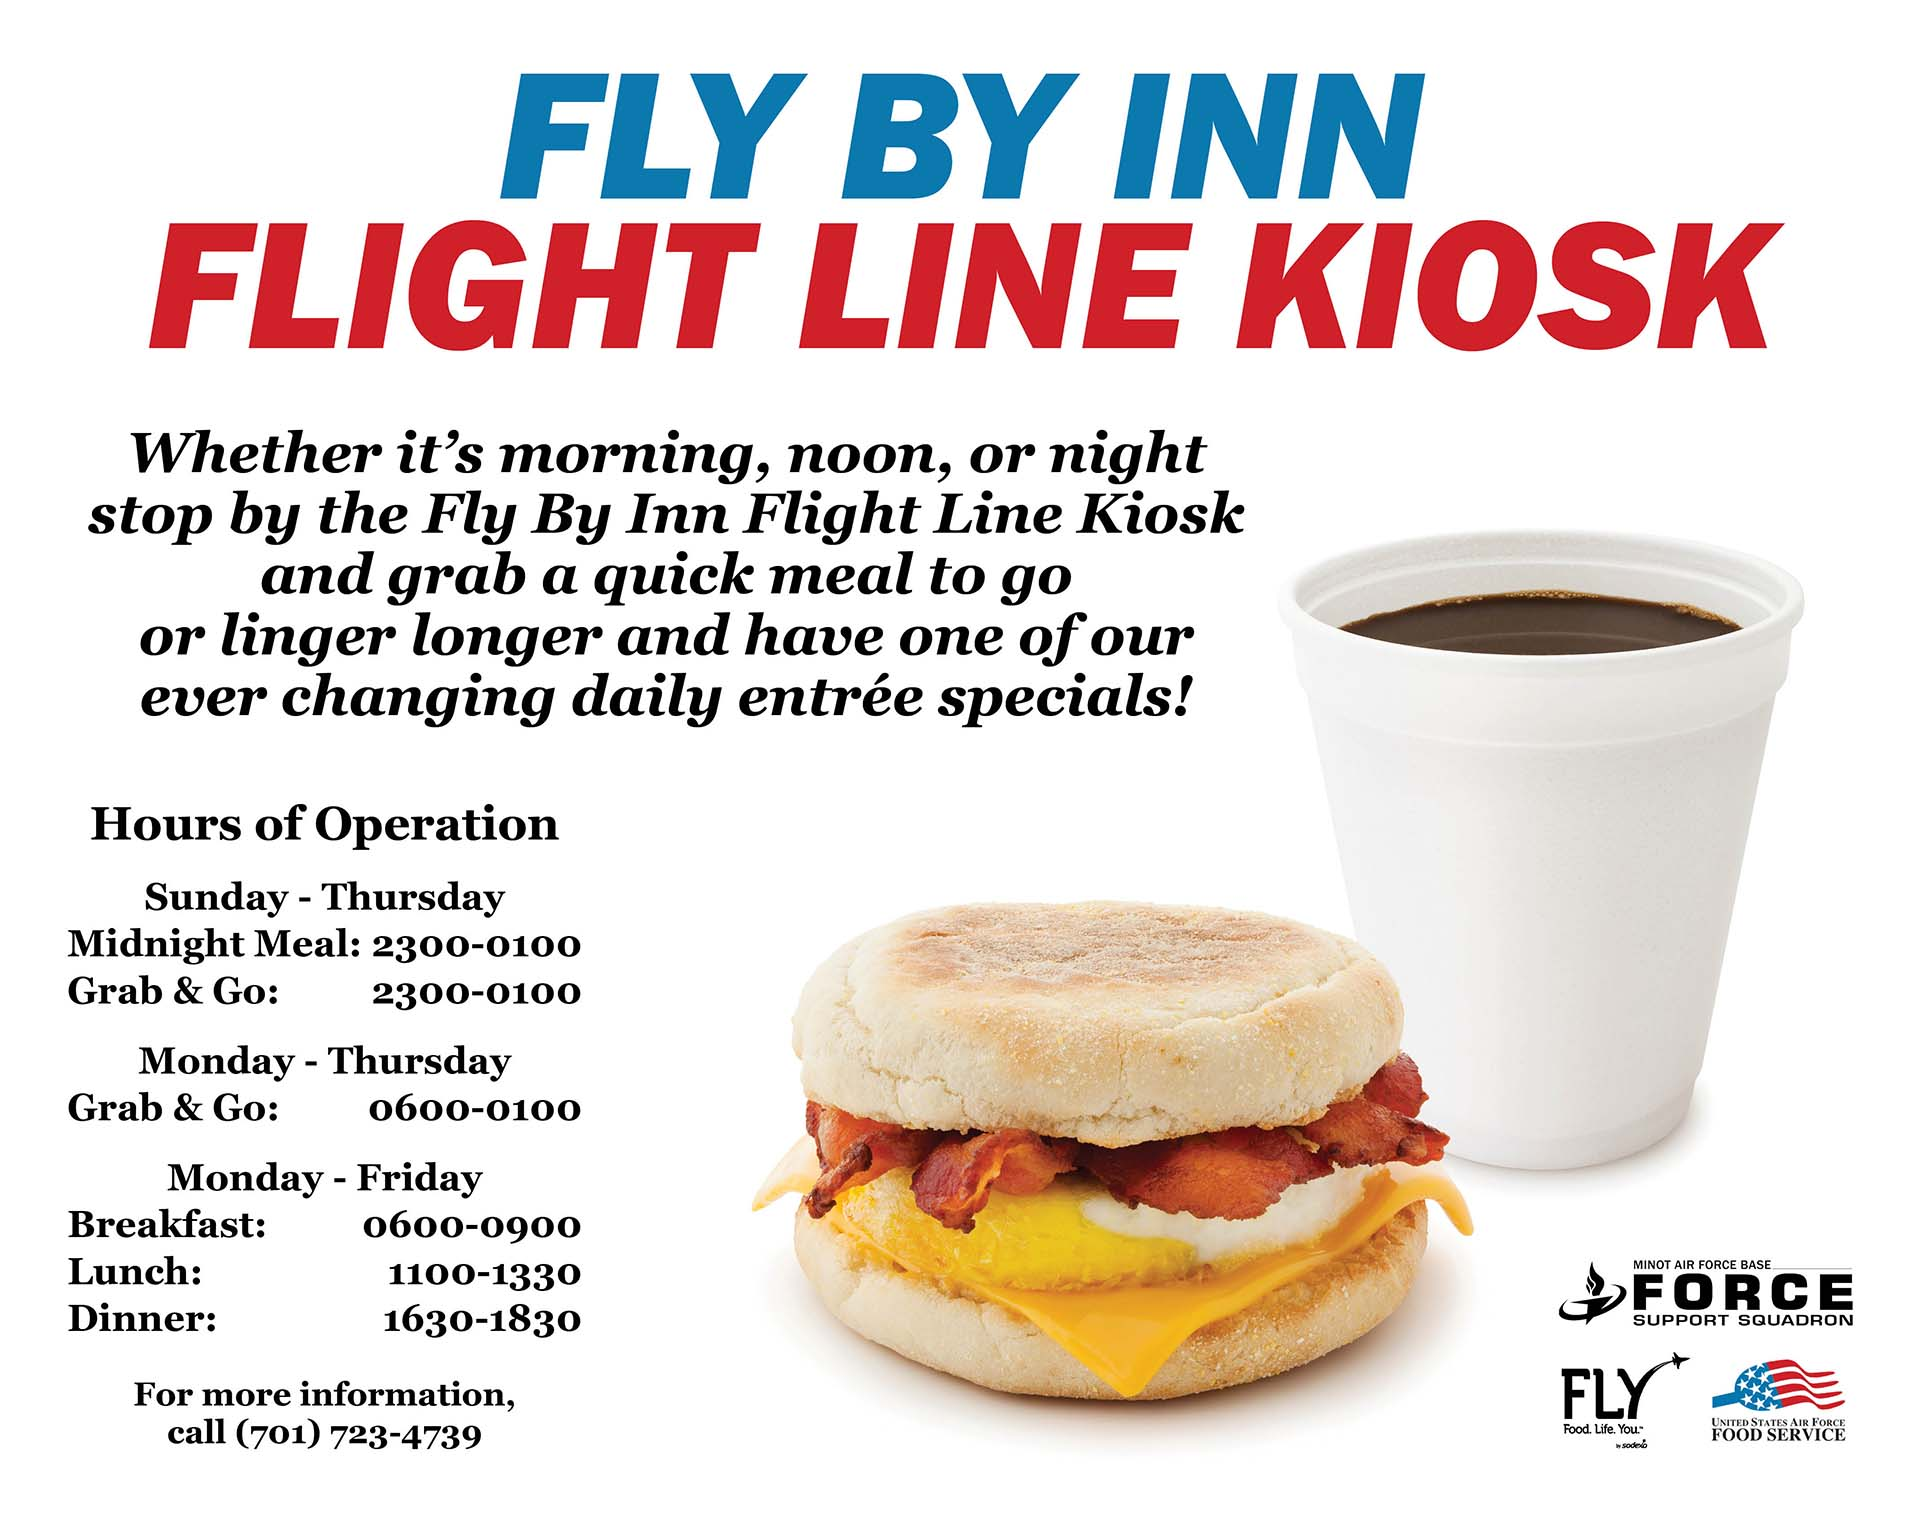 Fly By Inn Flight Line Kiosk - New Graphic